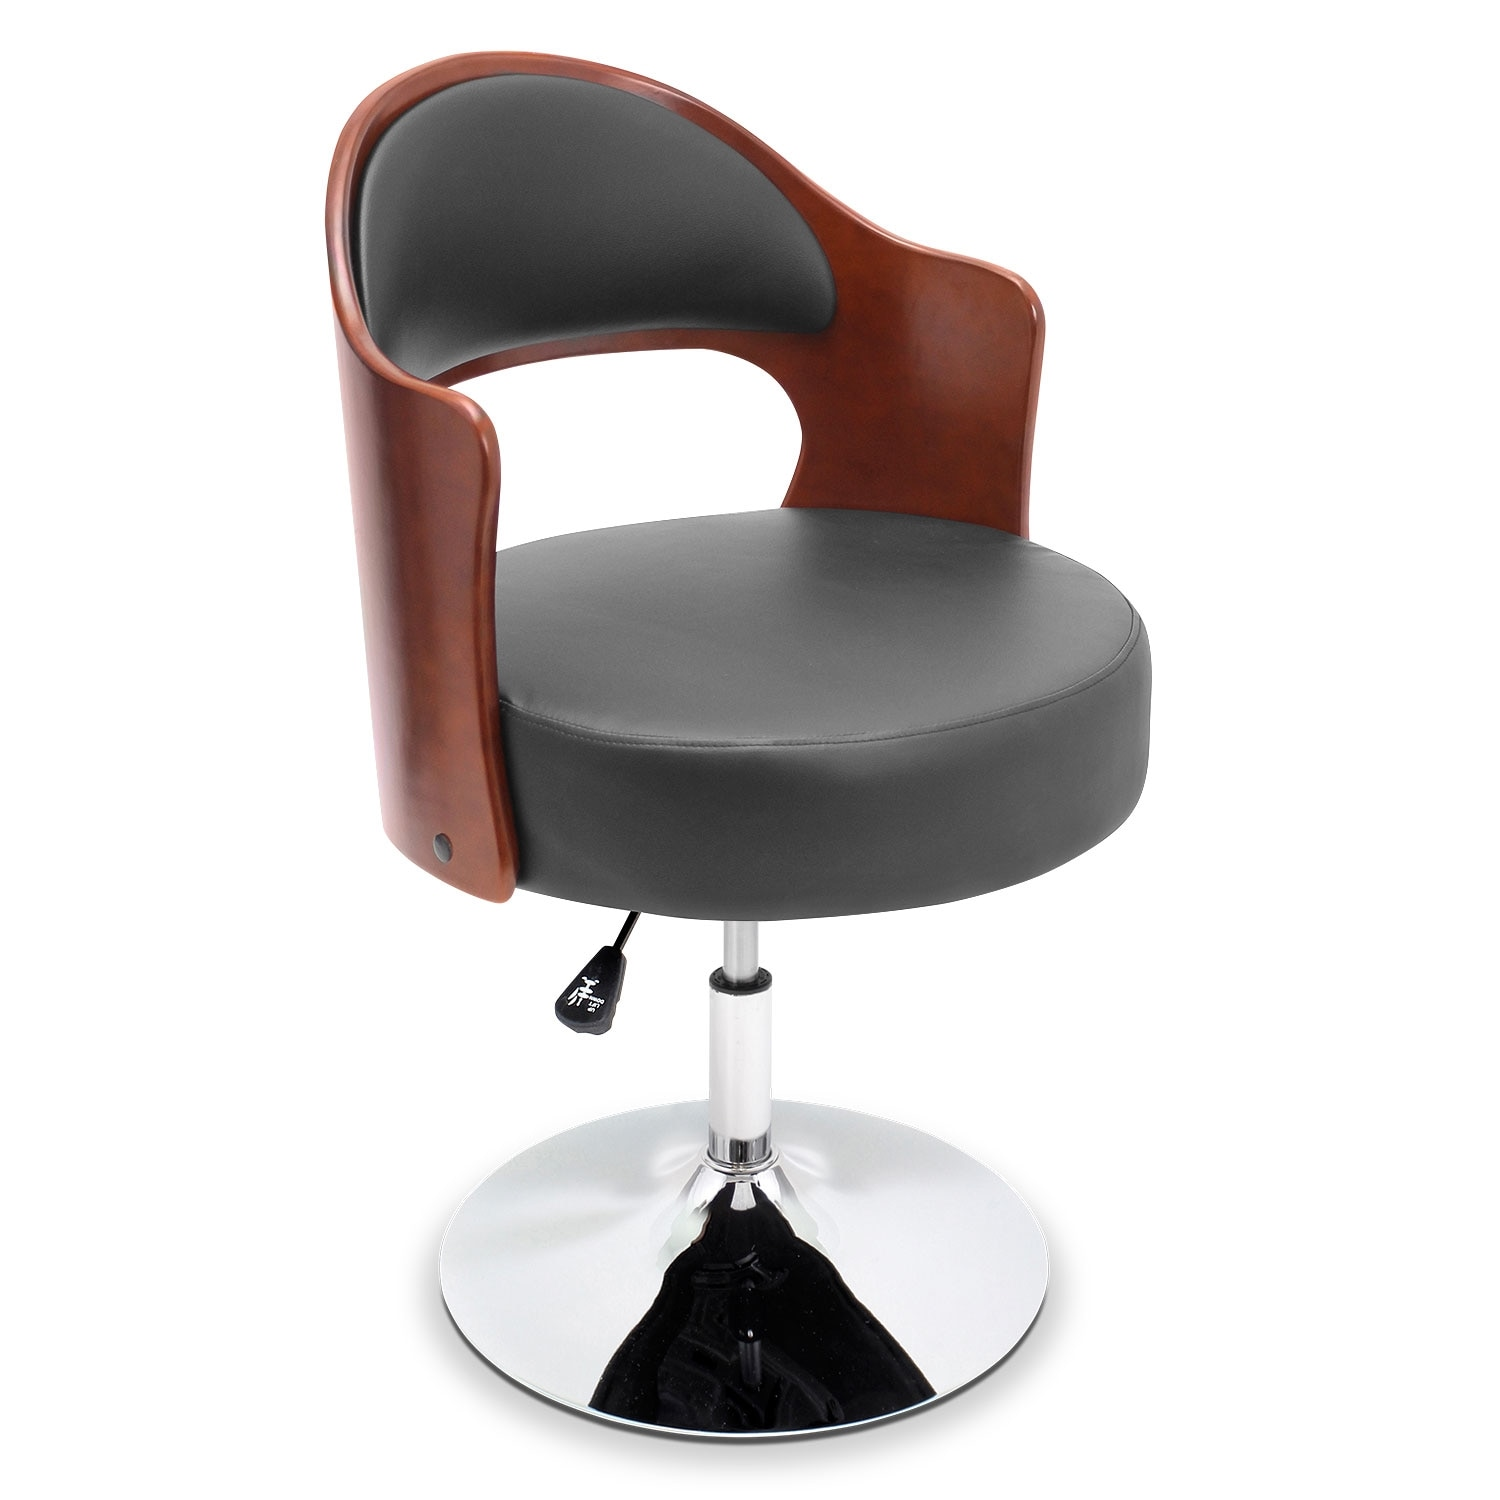 Park Accent Chair - Black